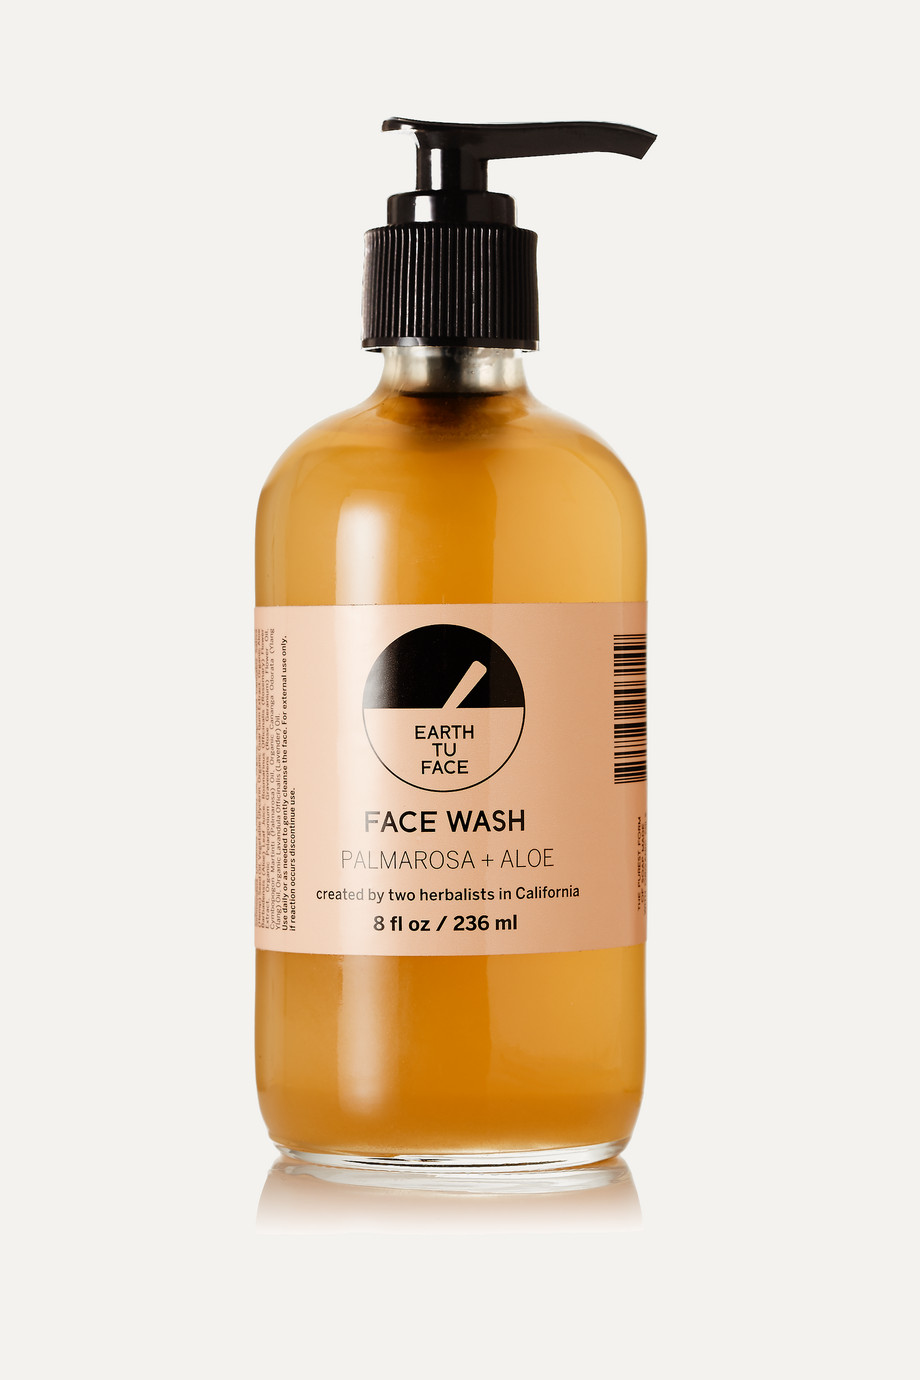 Earth Tu Face Face Wash, 236ml